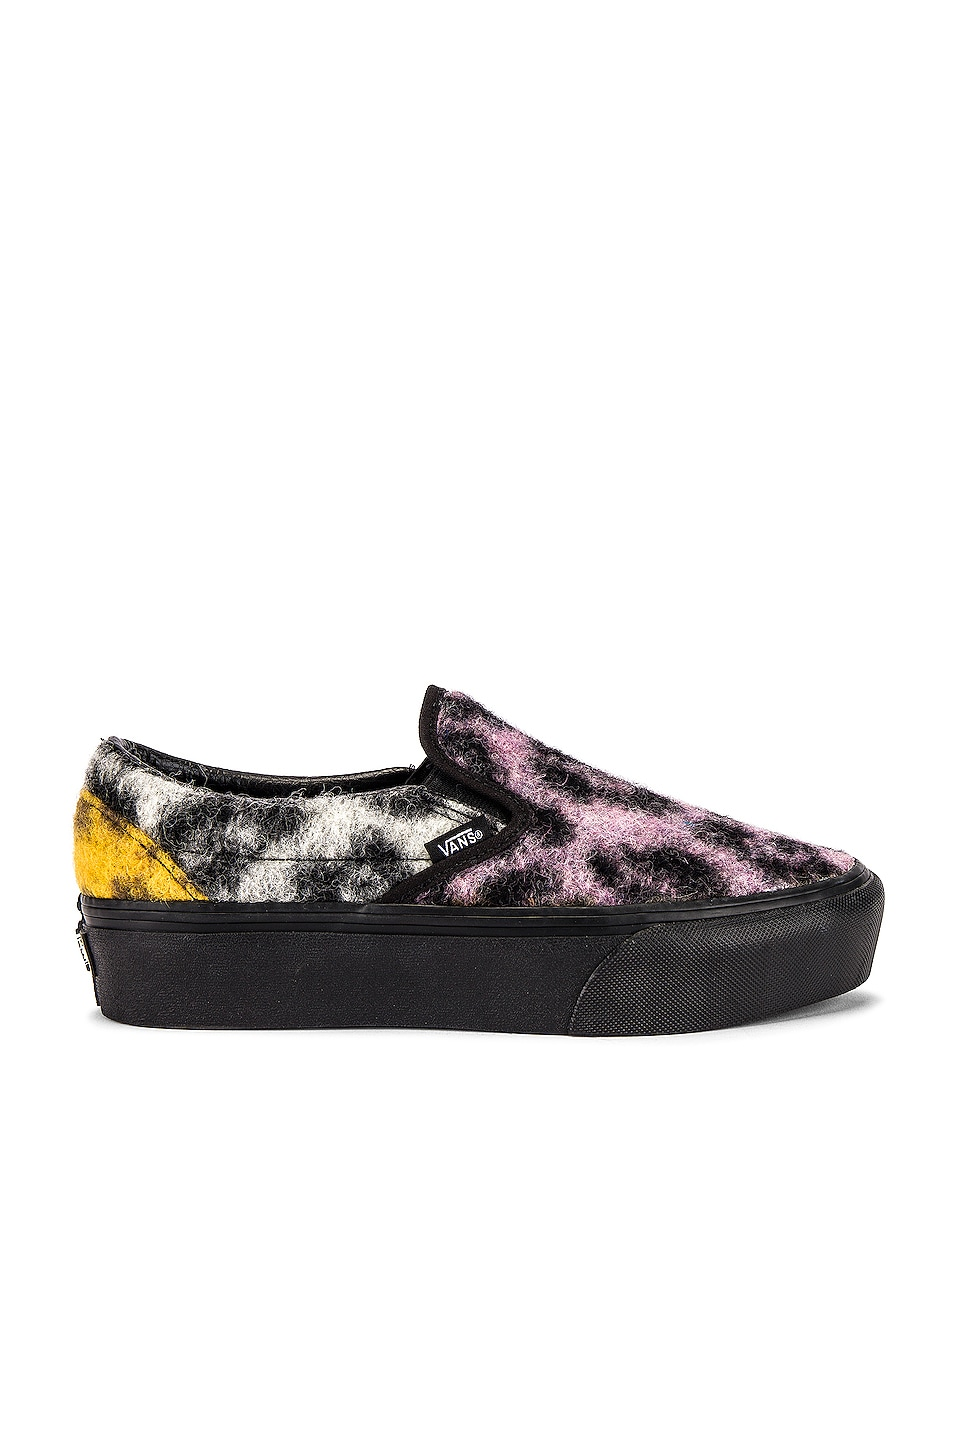 Vans Classic Slip-On Platform en Multi & Black